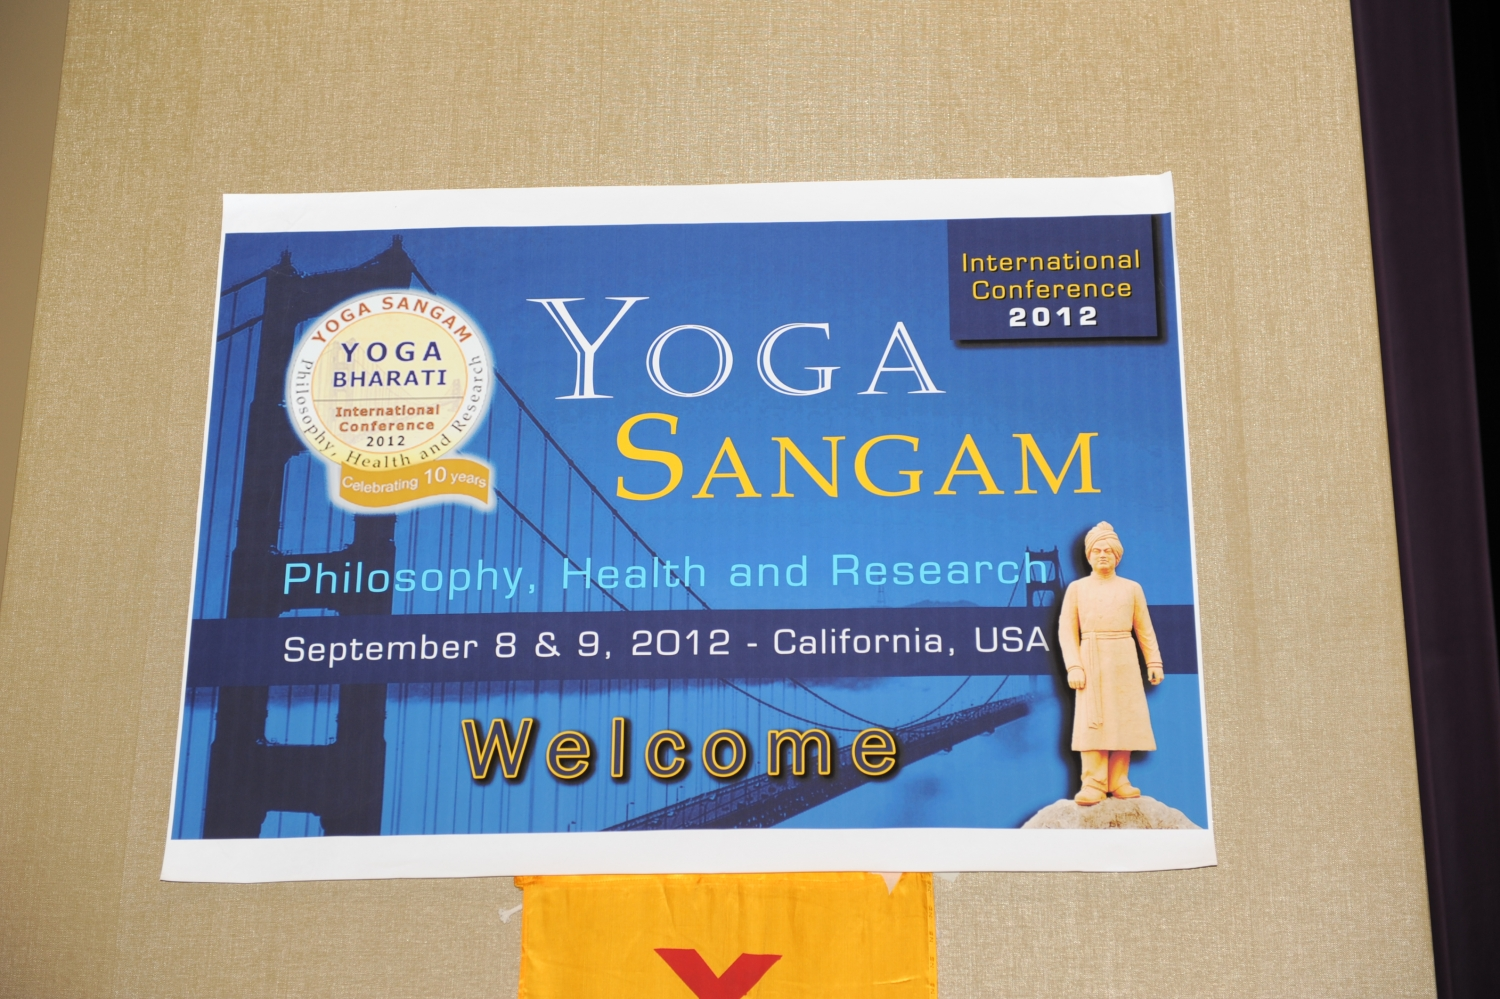 Yoga Sangam, International Yoga Conference - Palo Alto, San Francisco, California - 2012, Setptember